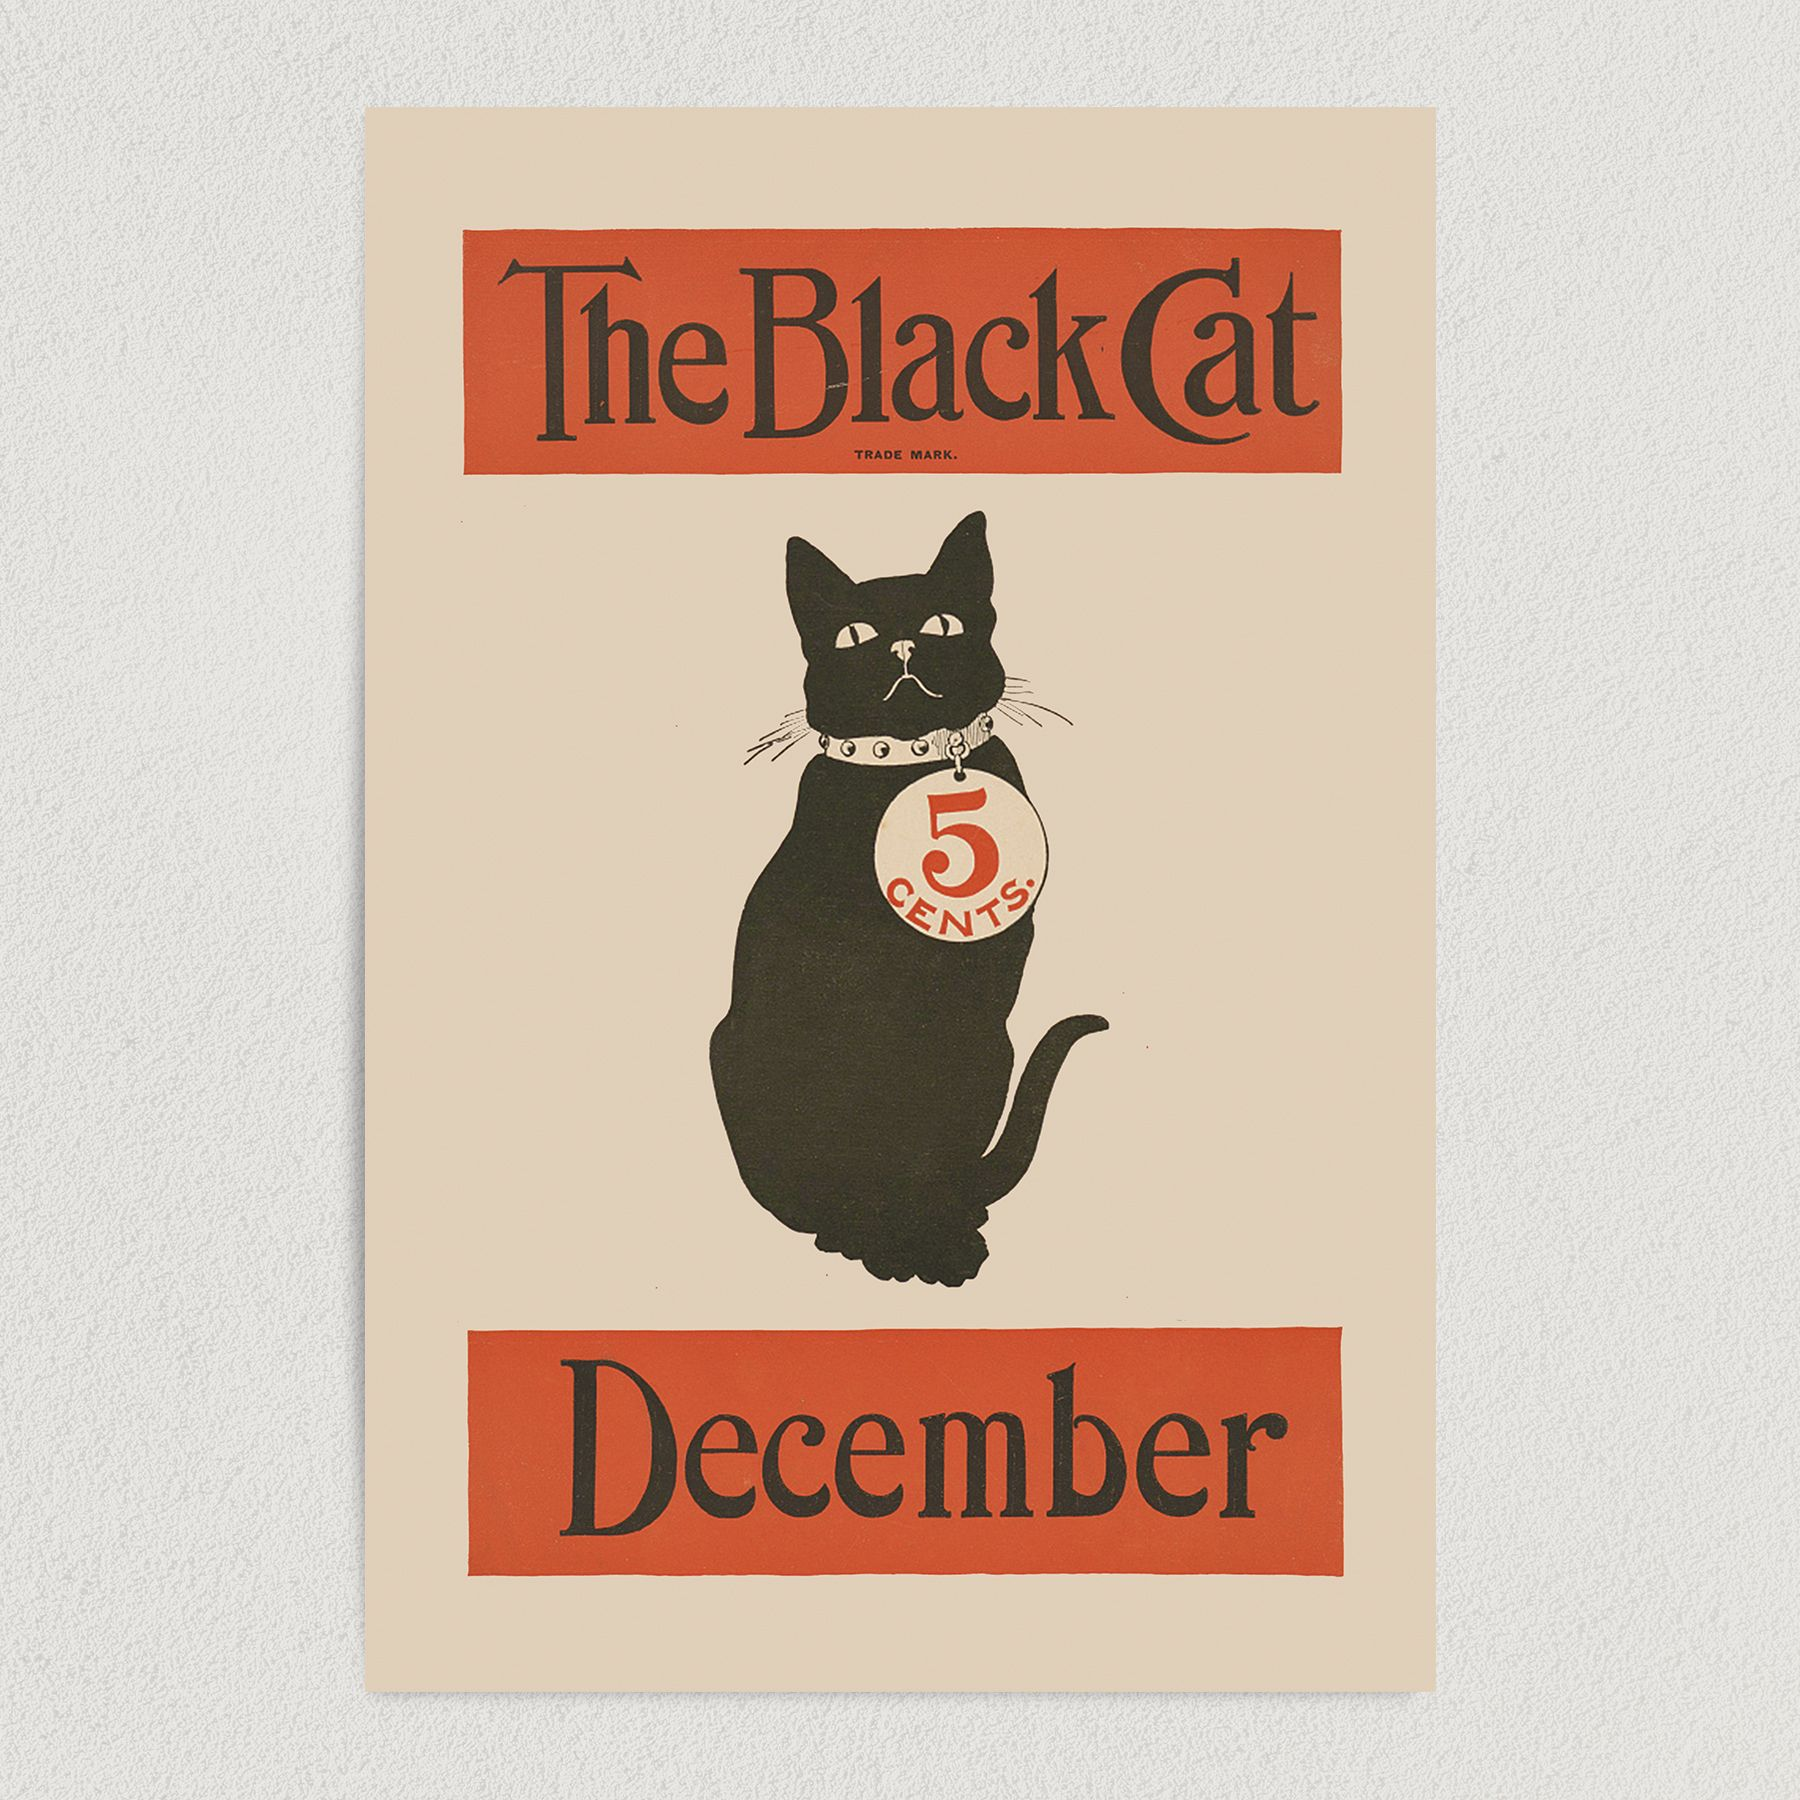 Black Cat December Issue Art Print Poster 12″ x 18″ Wall Art FE3174